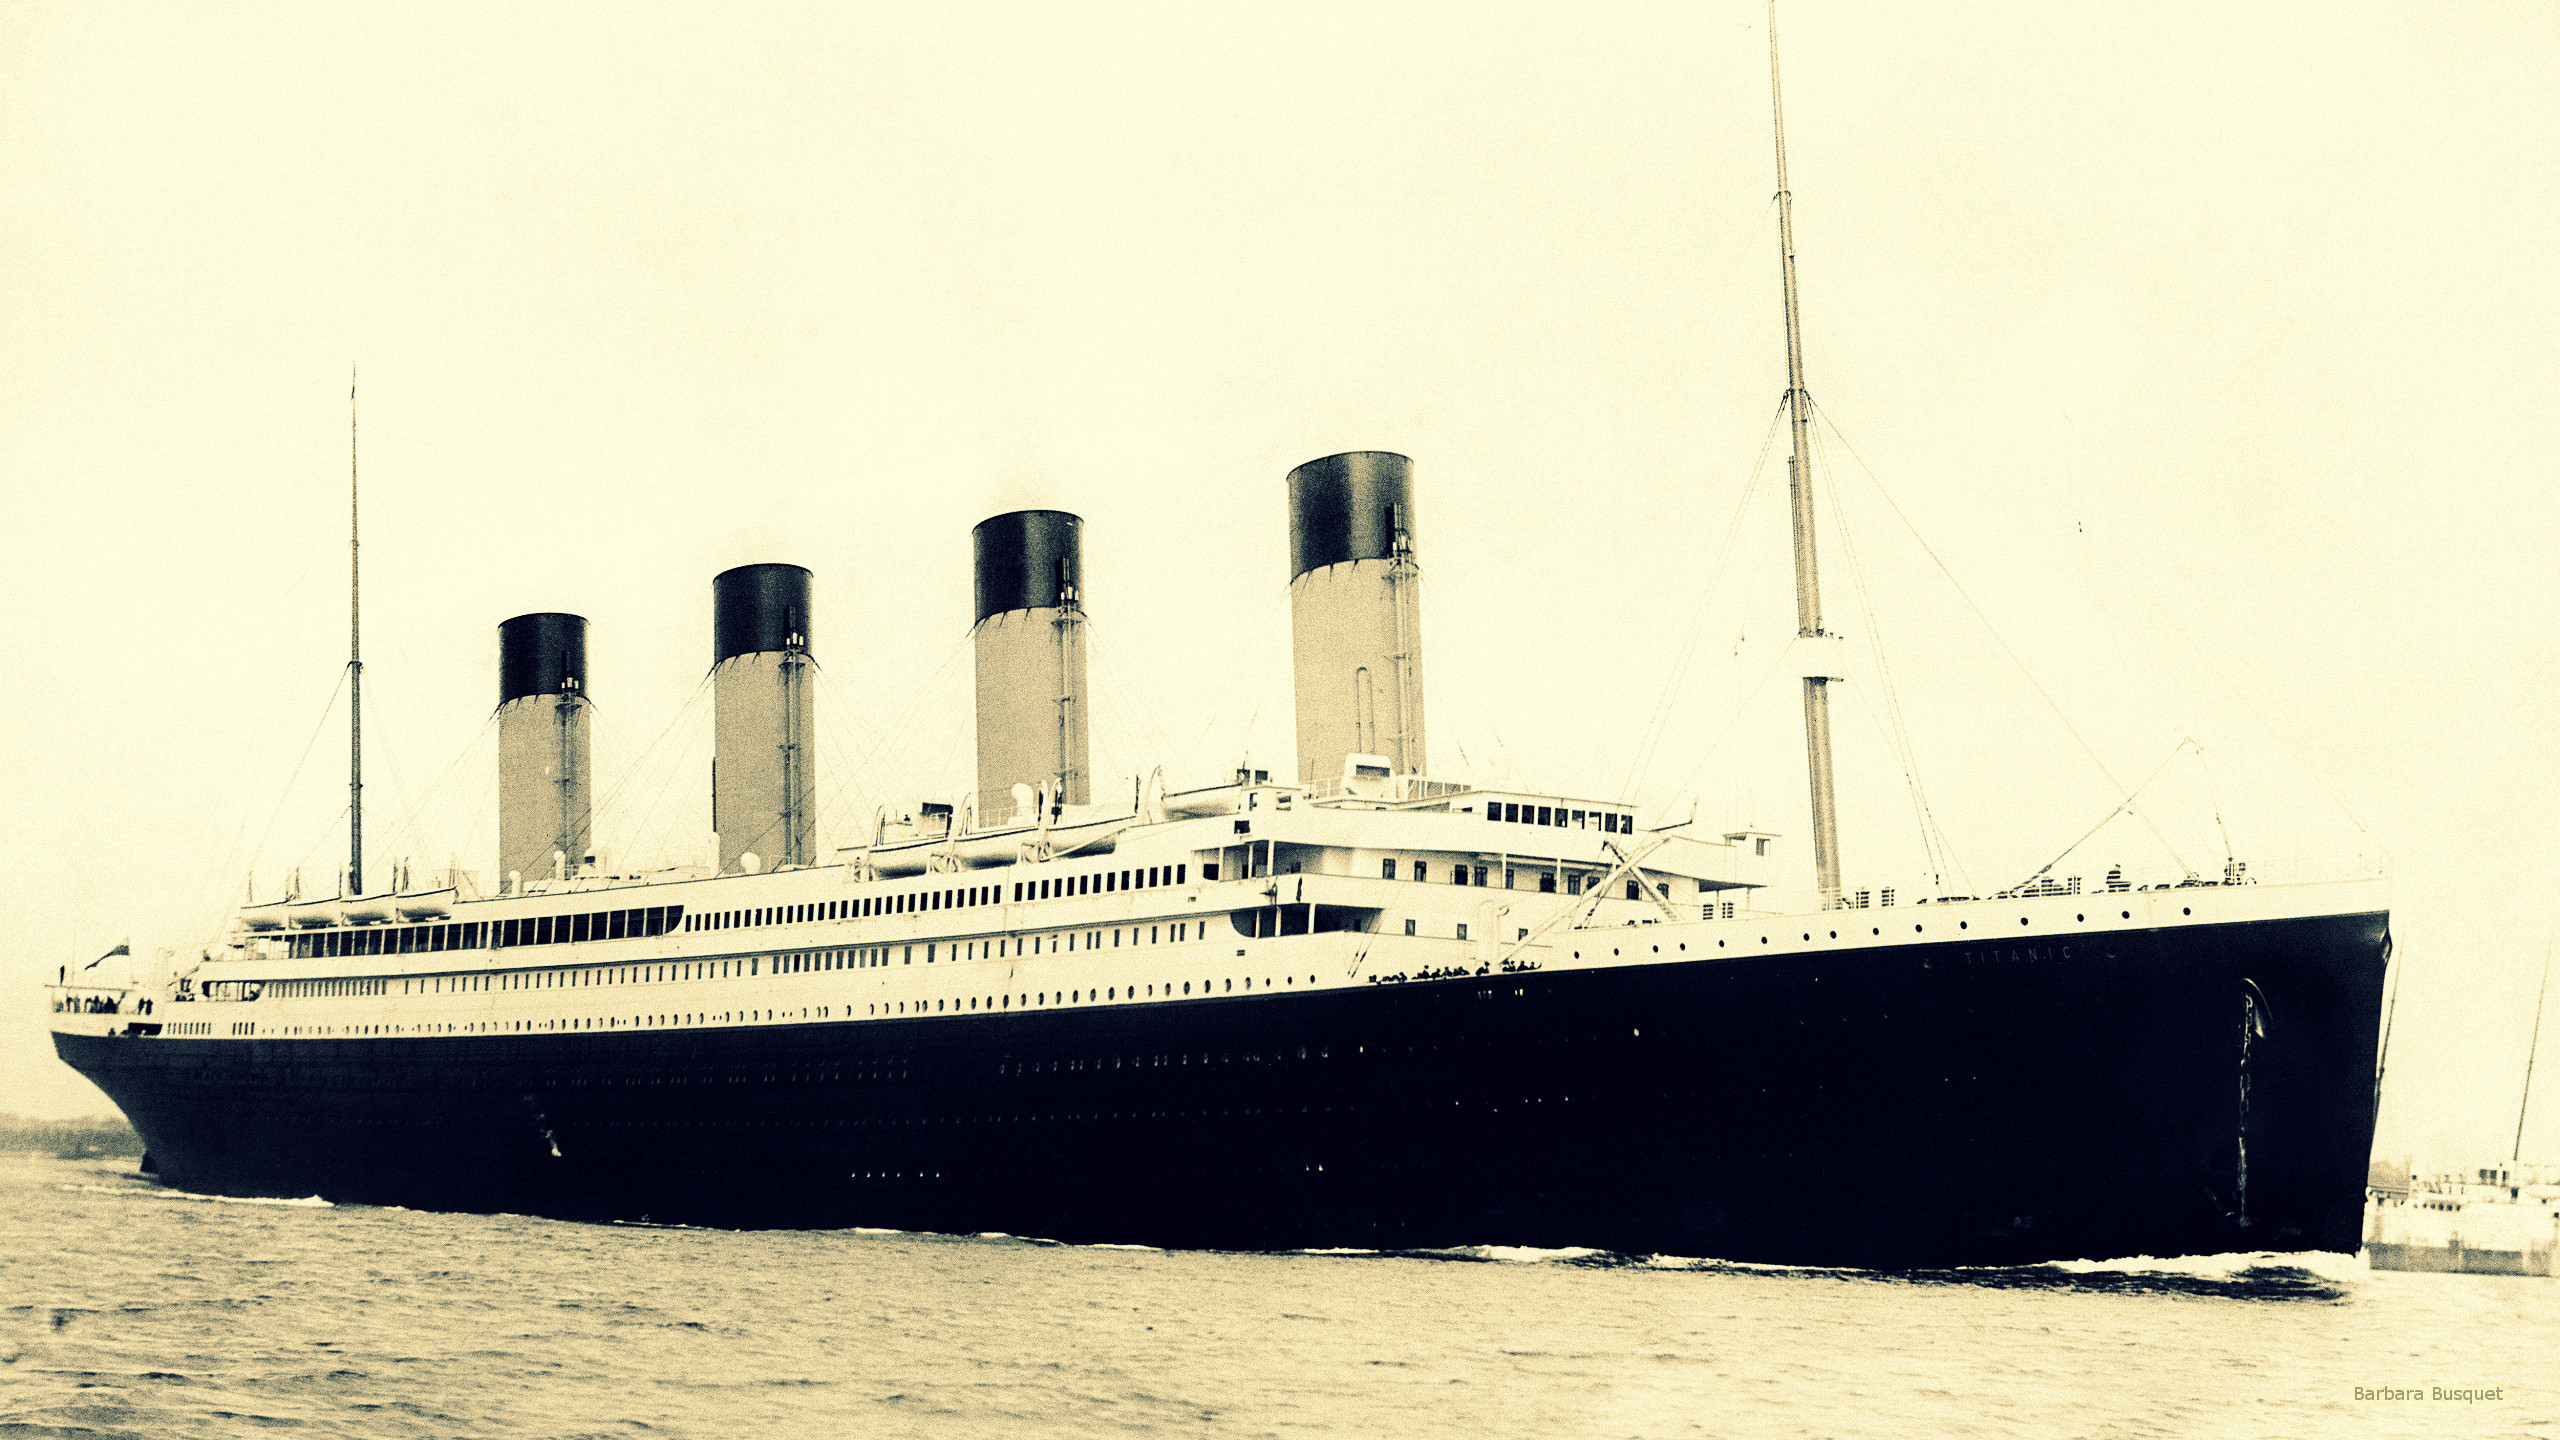 2560x1440 RMS Titanic wallpaper.